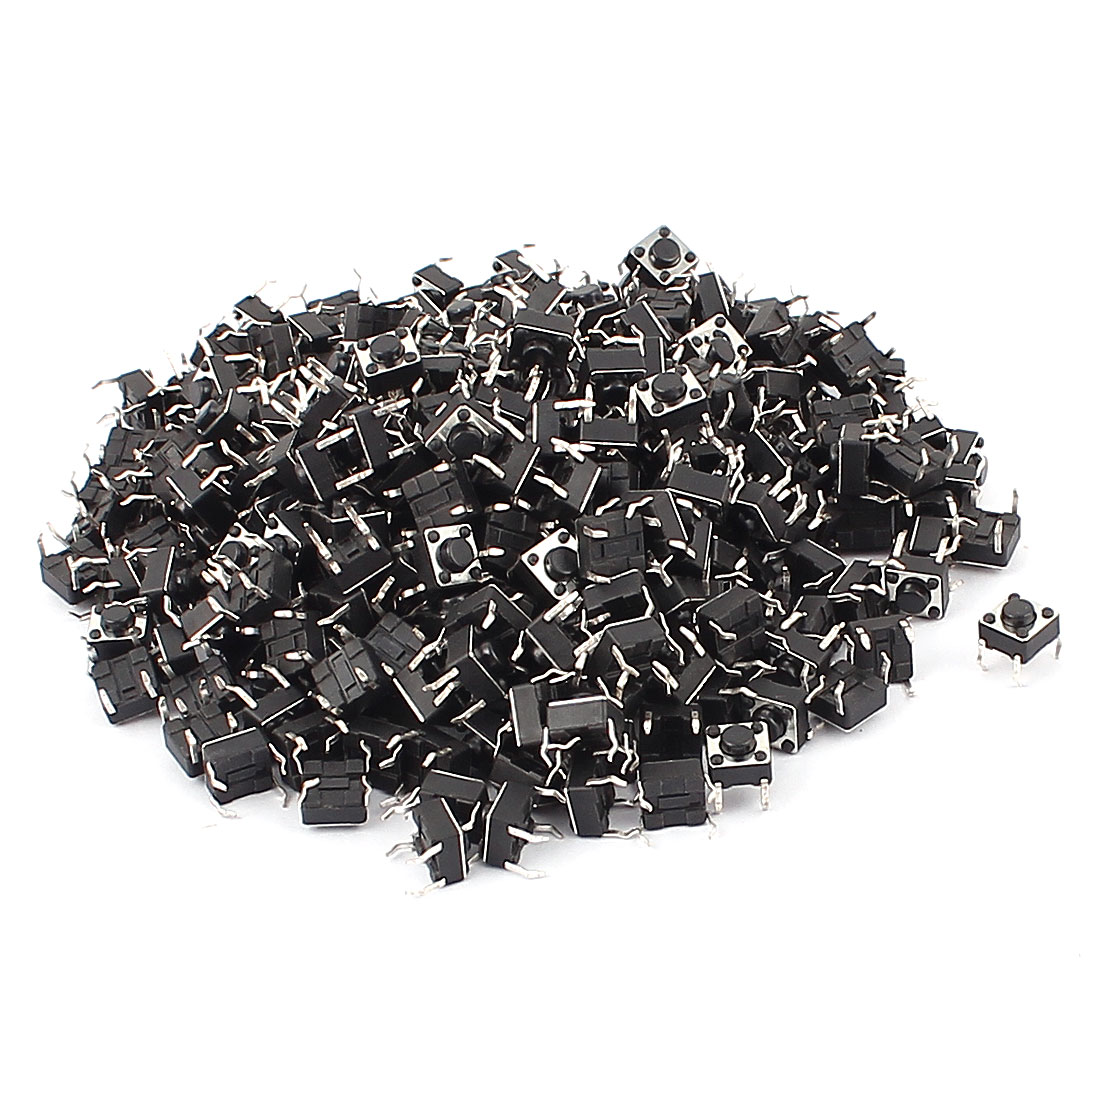 300 Pcs Momentary SMT PCB 4 Pins Tact Tactile Push Button Switch